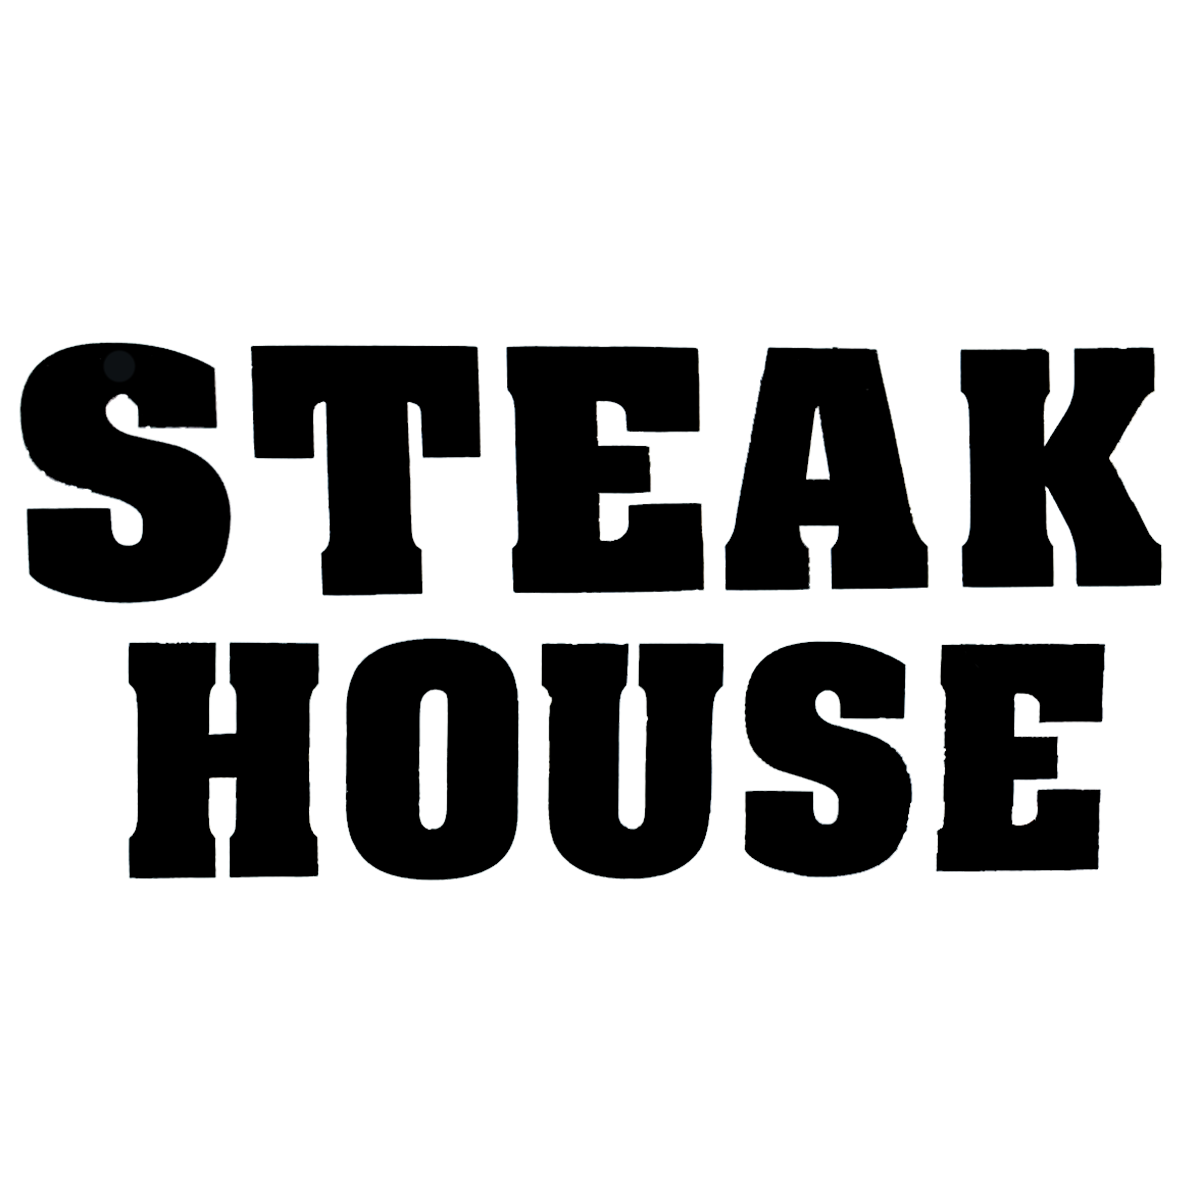 Steakhouse logotype